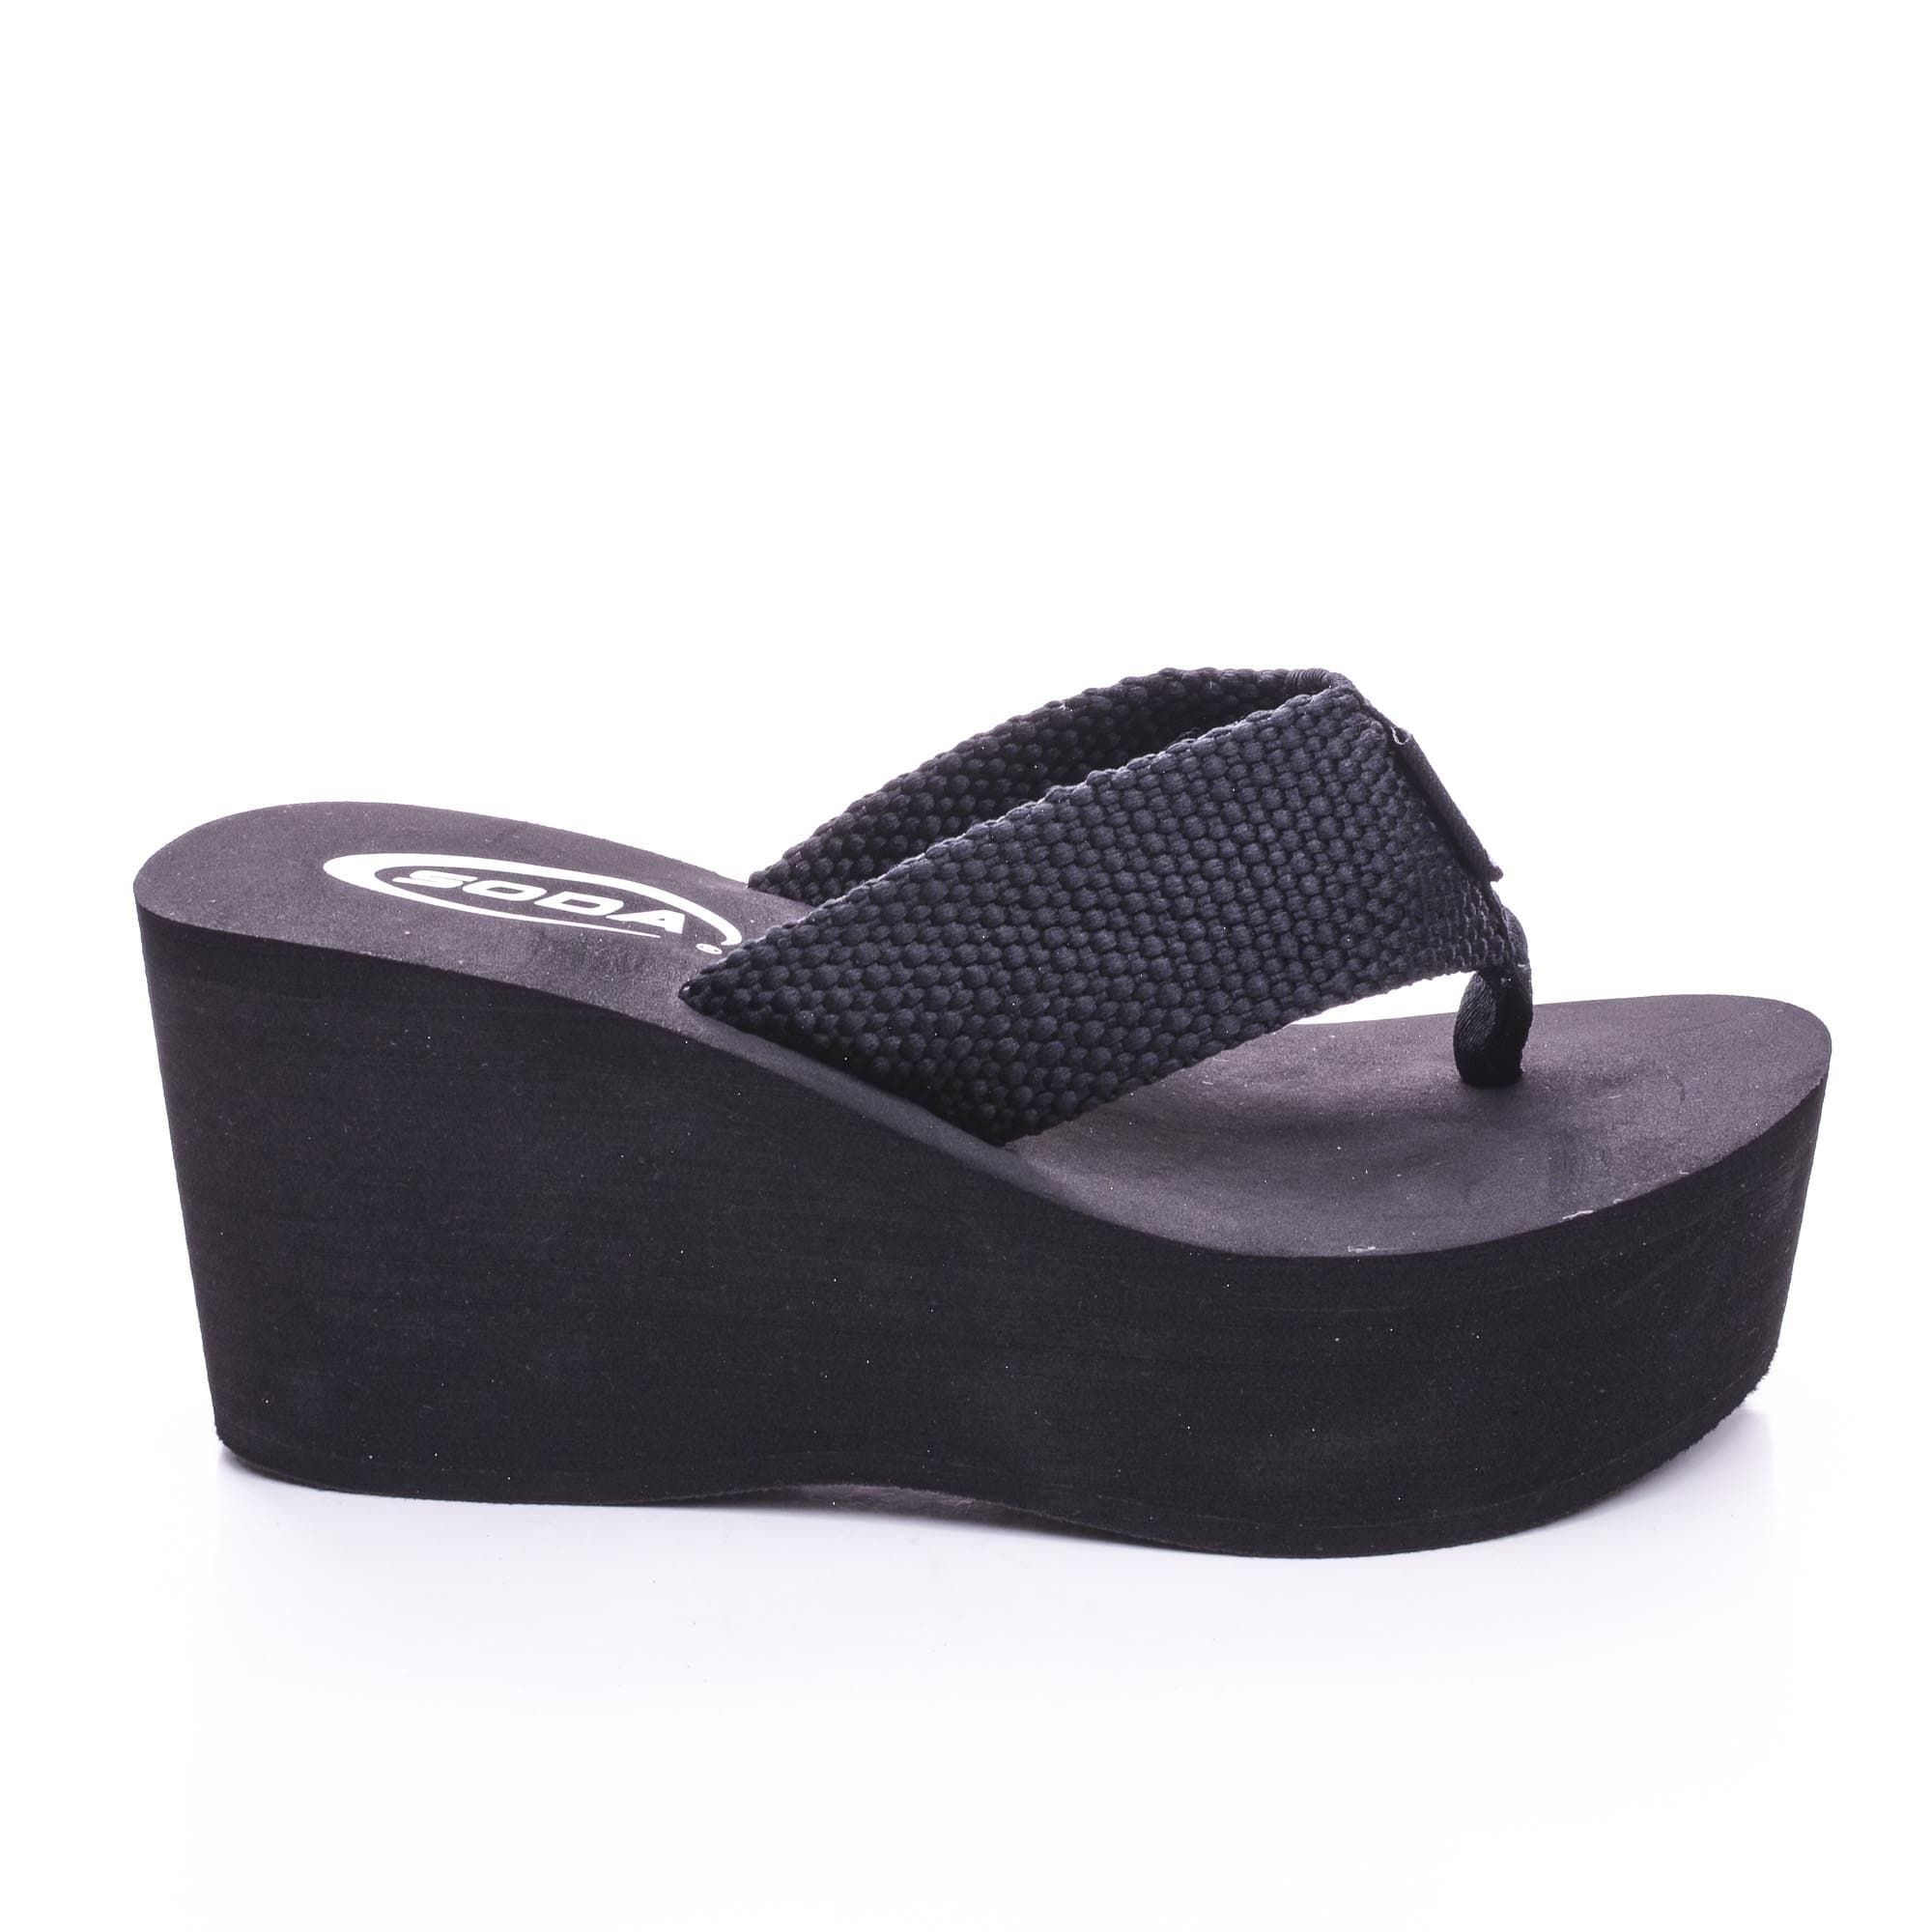 Oxley By Bamboo, Thick T-Thong Slip On Platform High Wedge Sandals